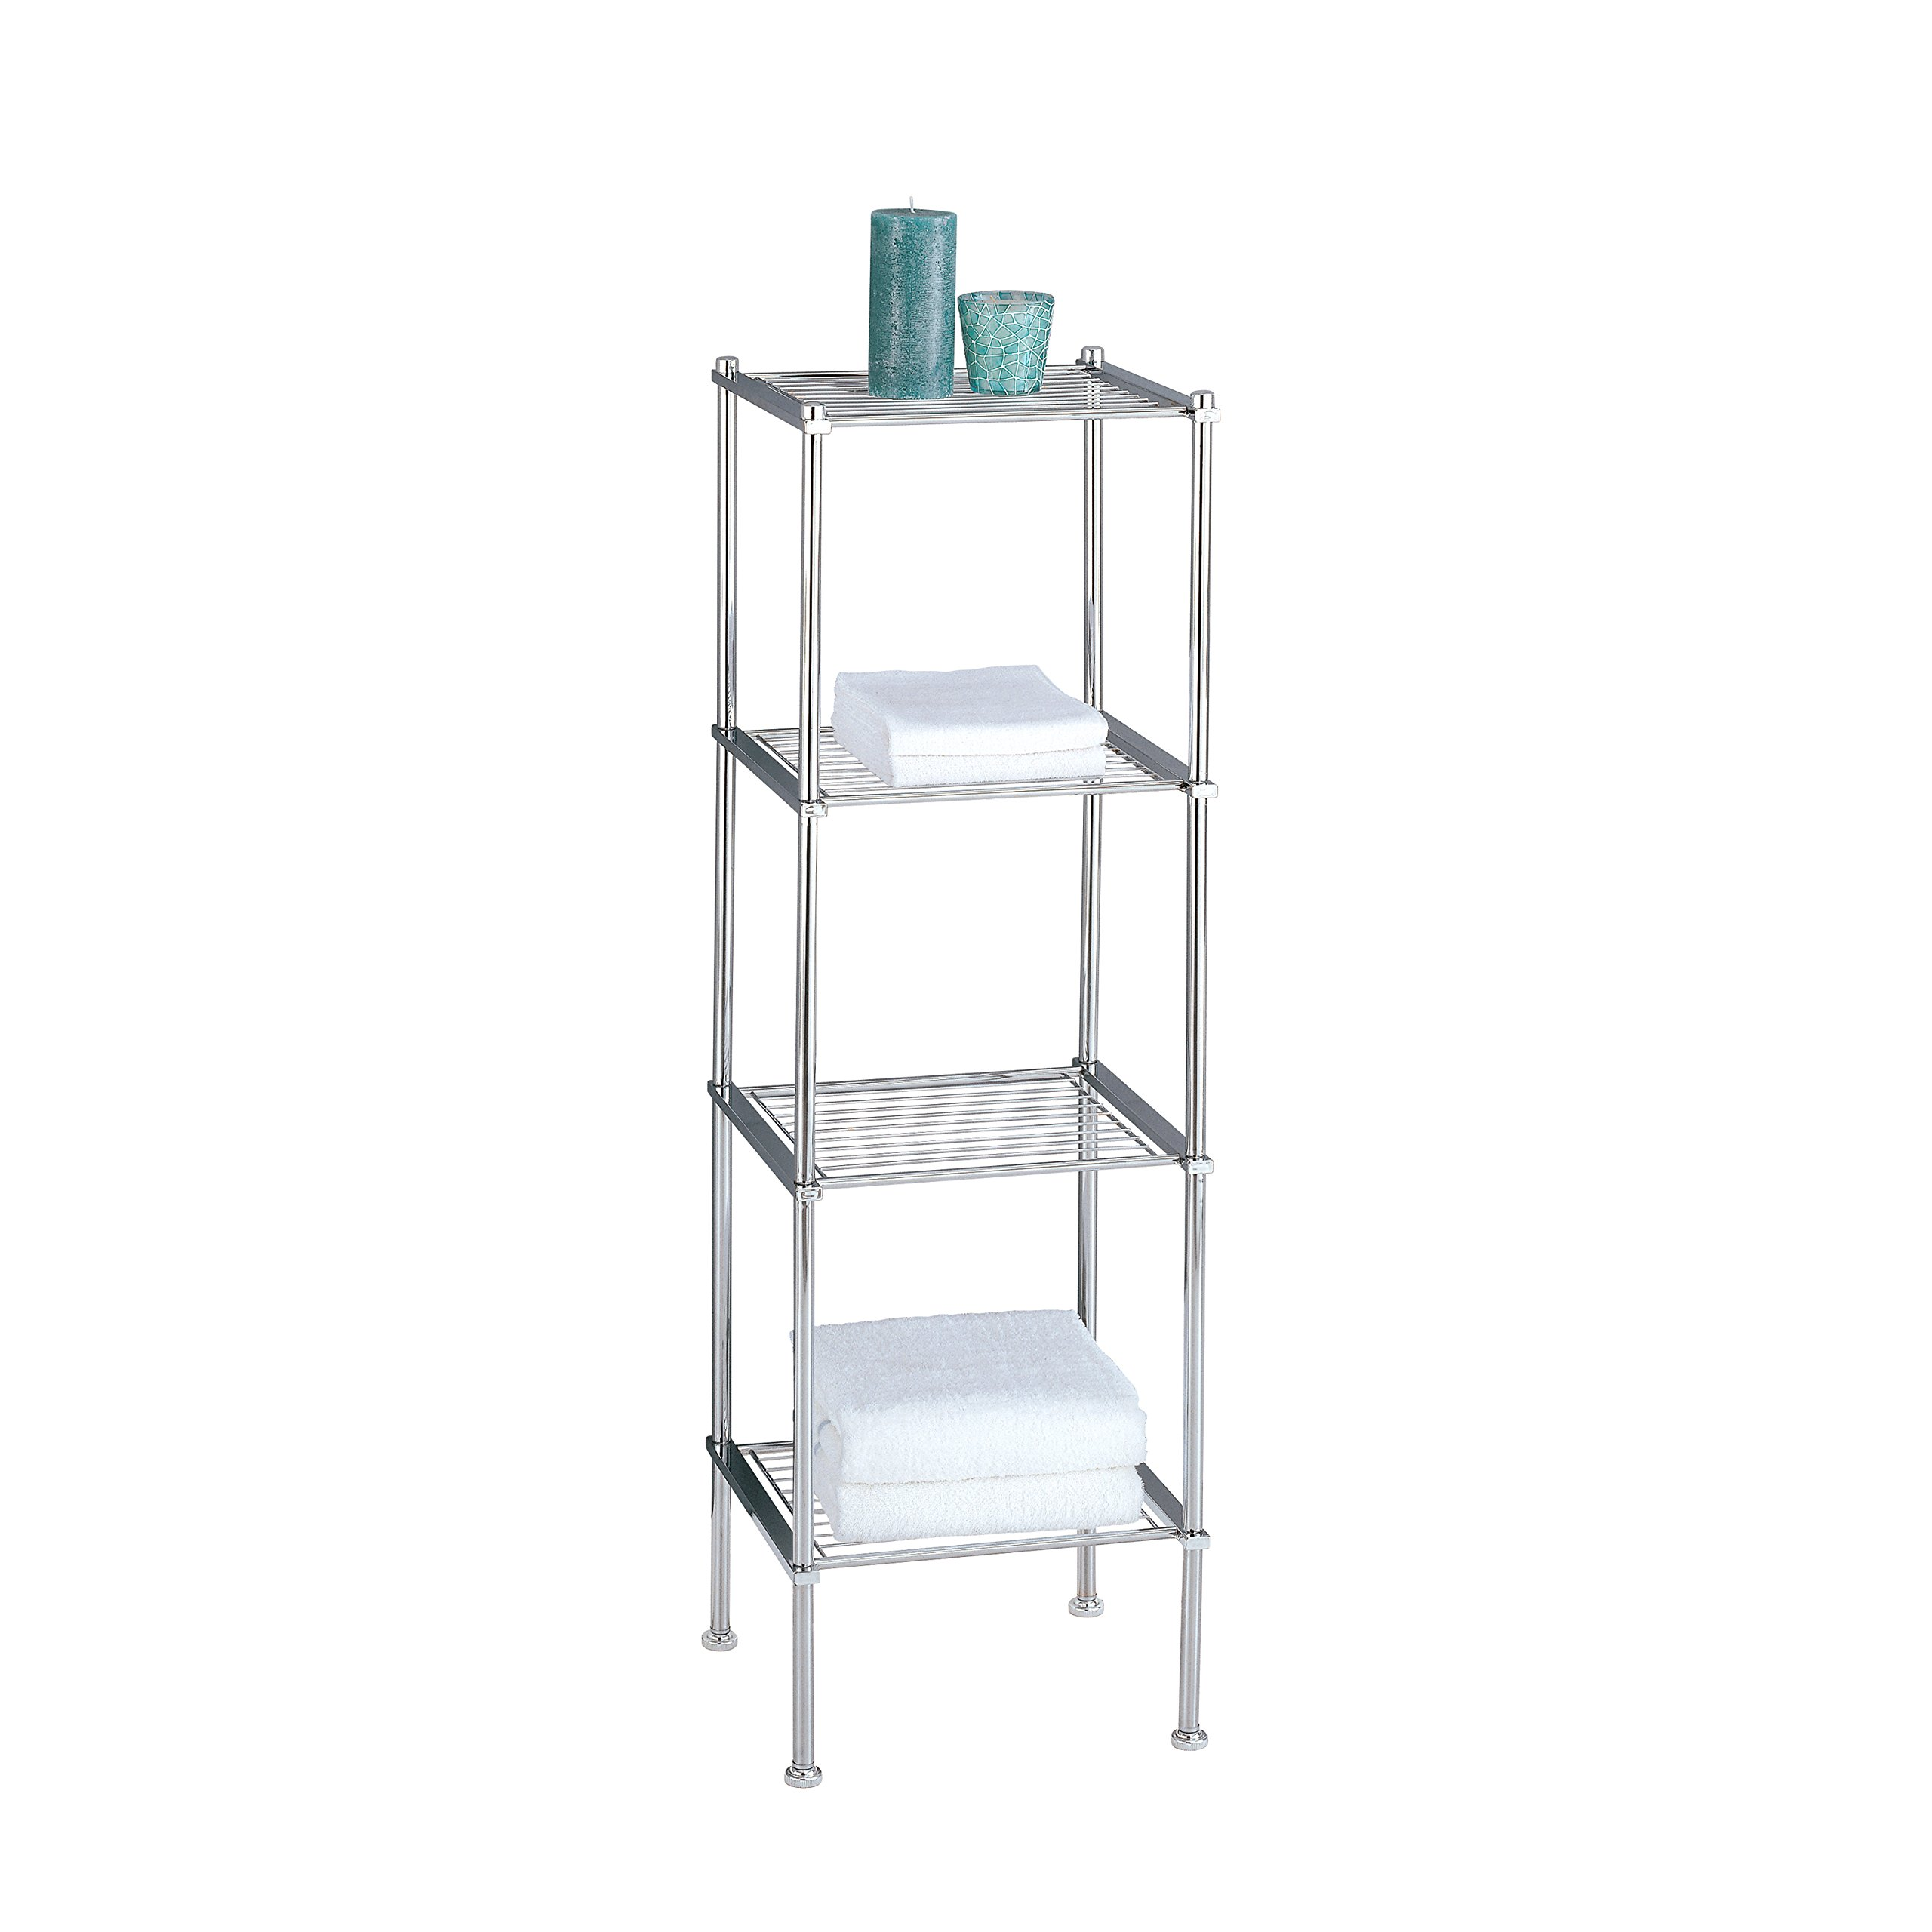 Organize It All 4 Tier Chrome Freestanding Bathroom Storage Shelf